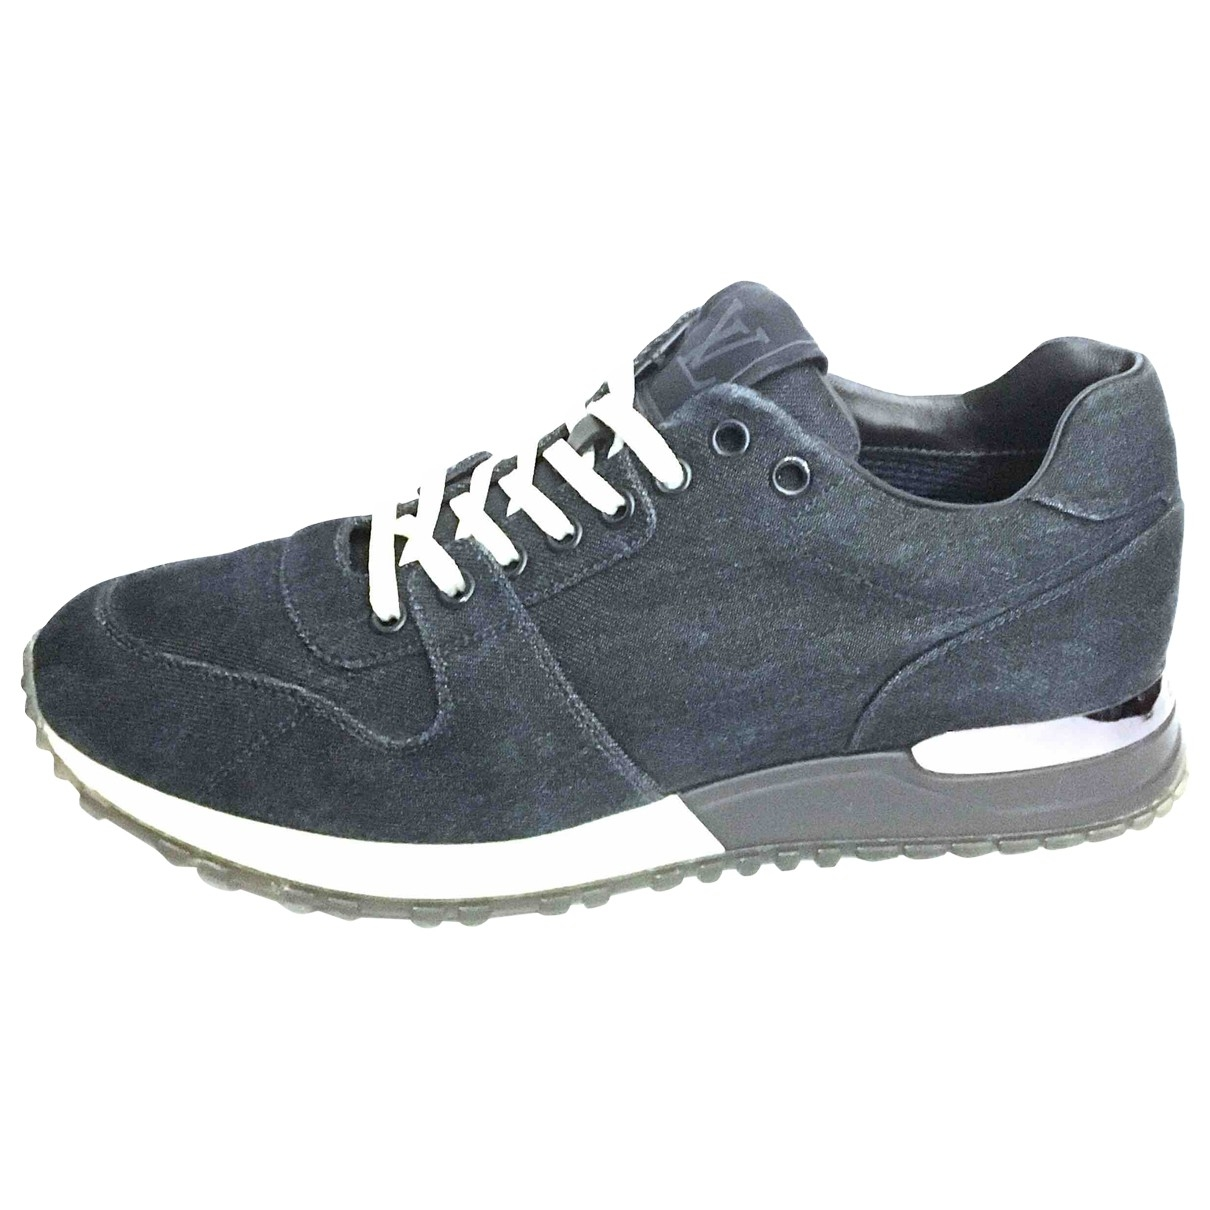 Louis Vuitton \N Navy Cloth Trainers for Women 5.5 UK